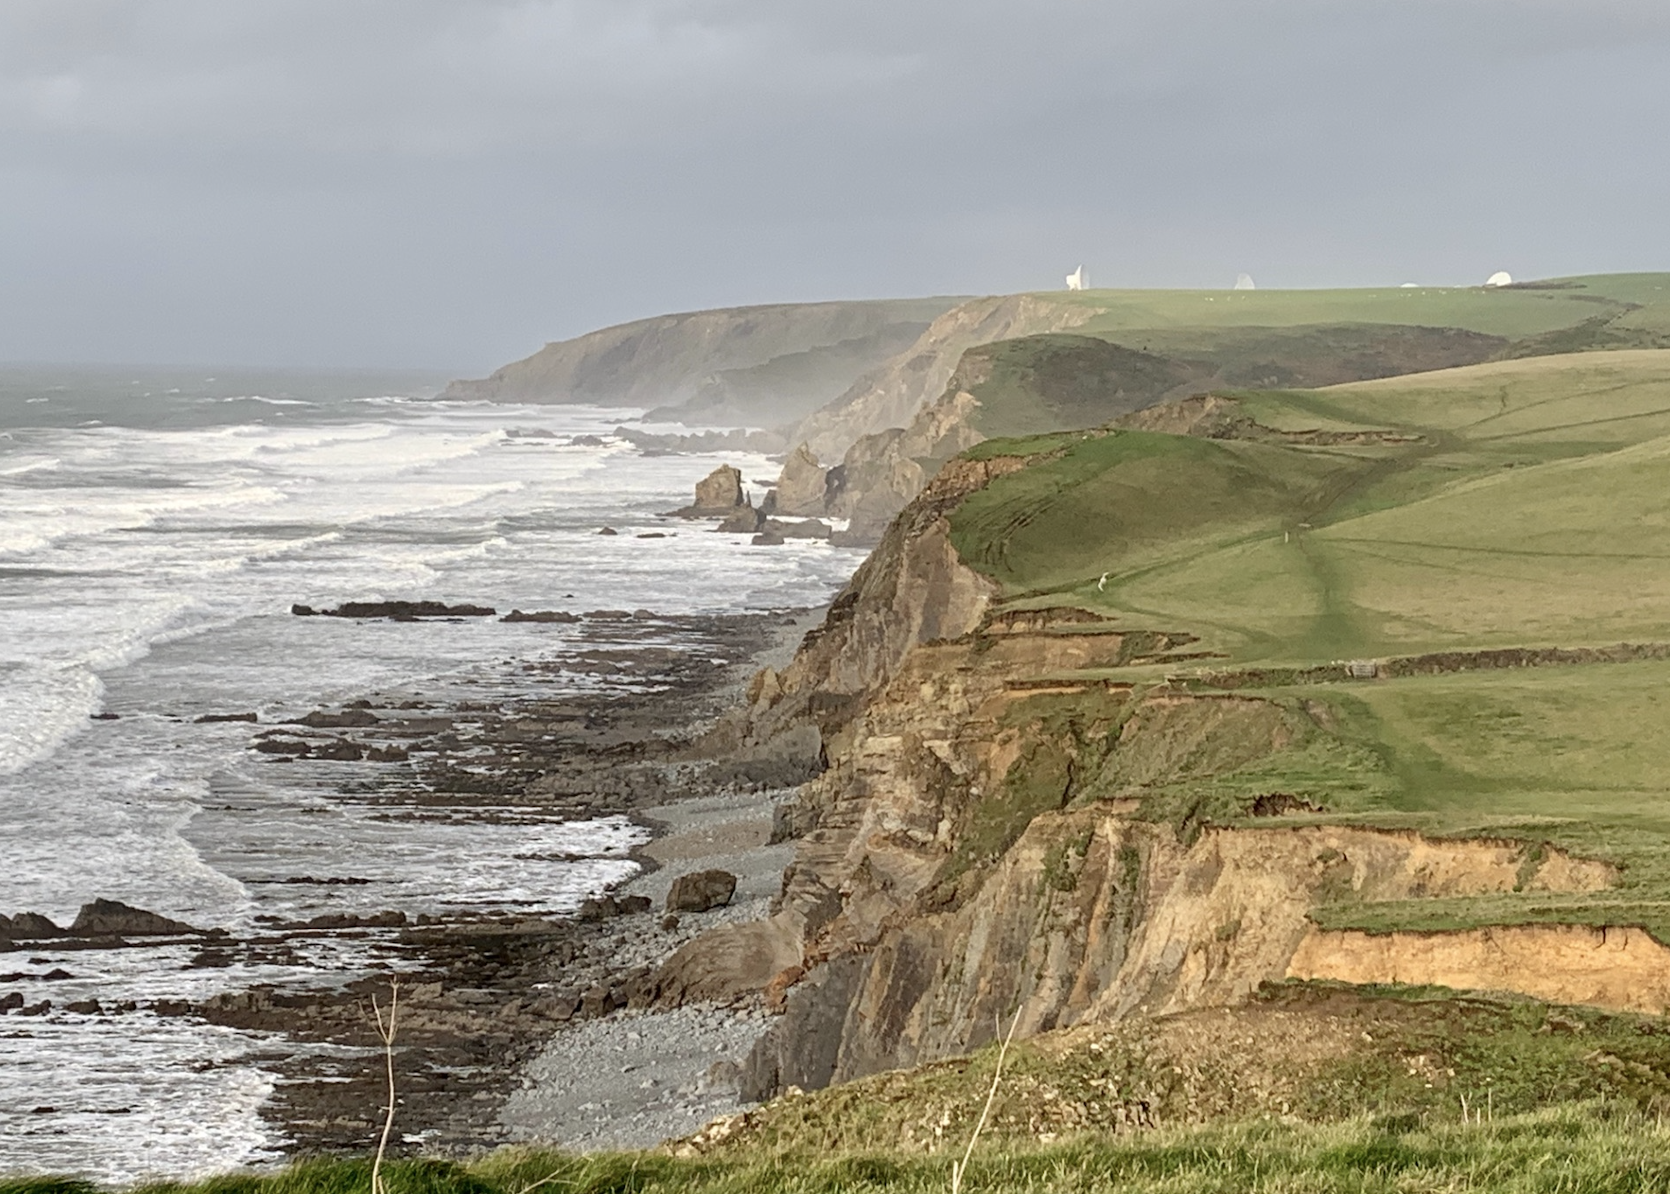 GCHQ dishes in the distance between Morwenstow and Bude on the South West Coast Path